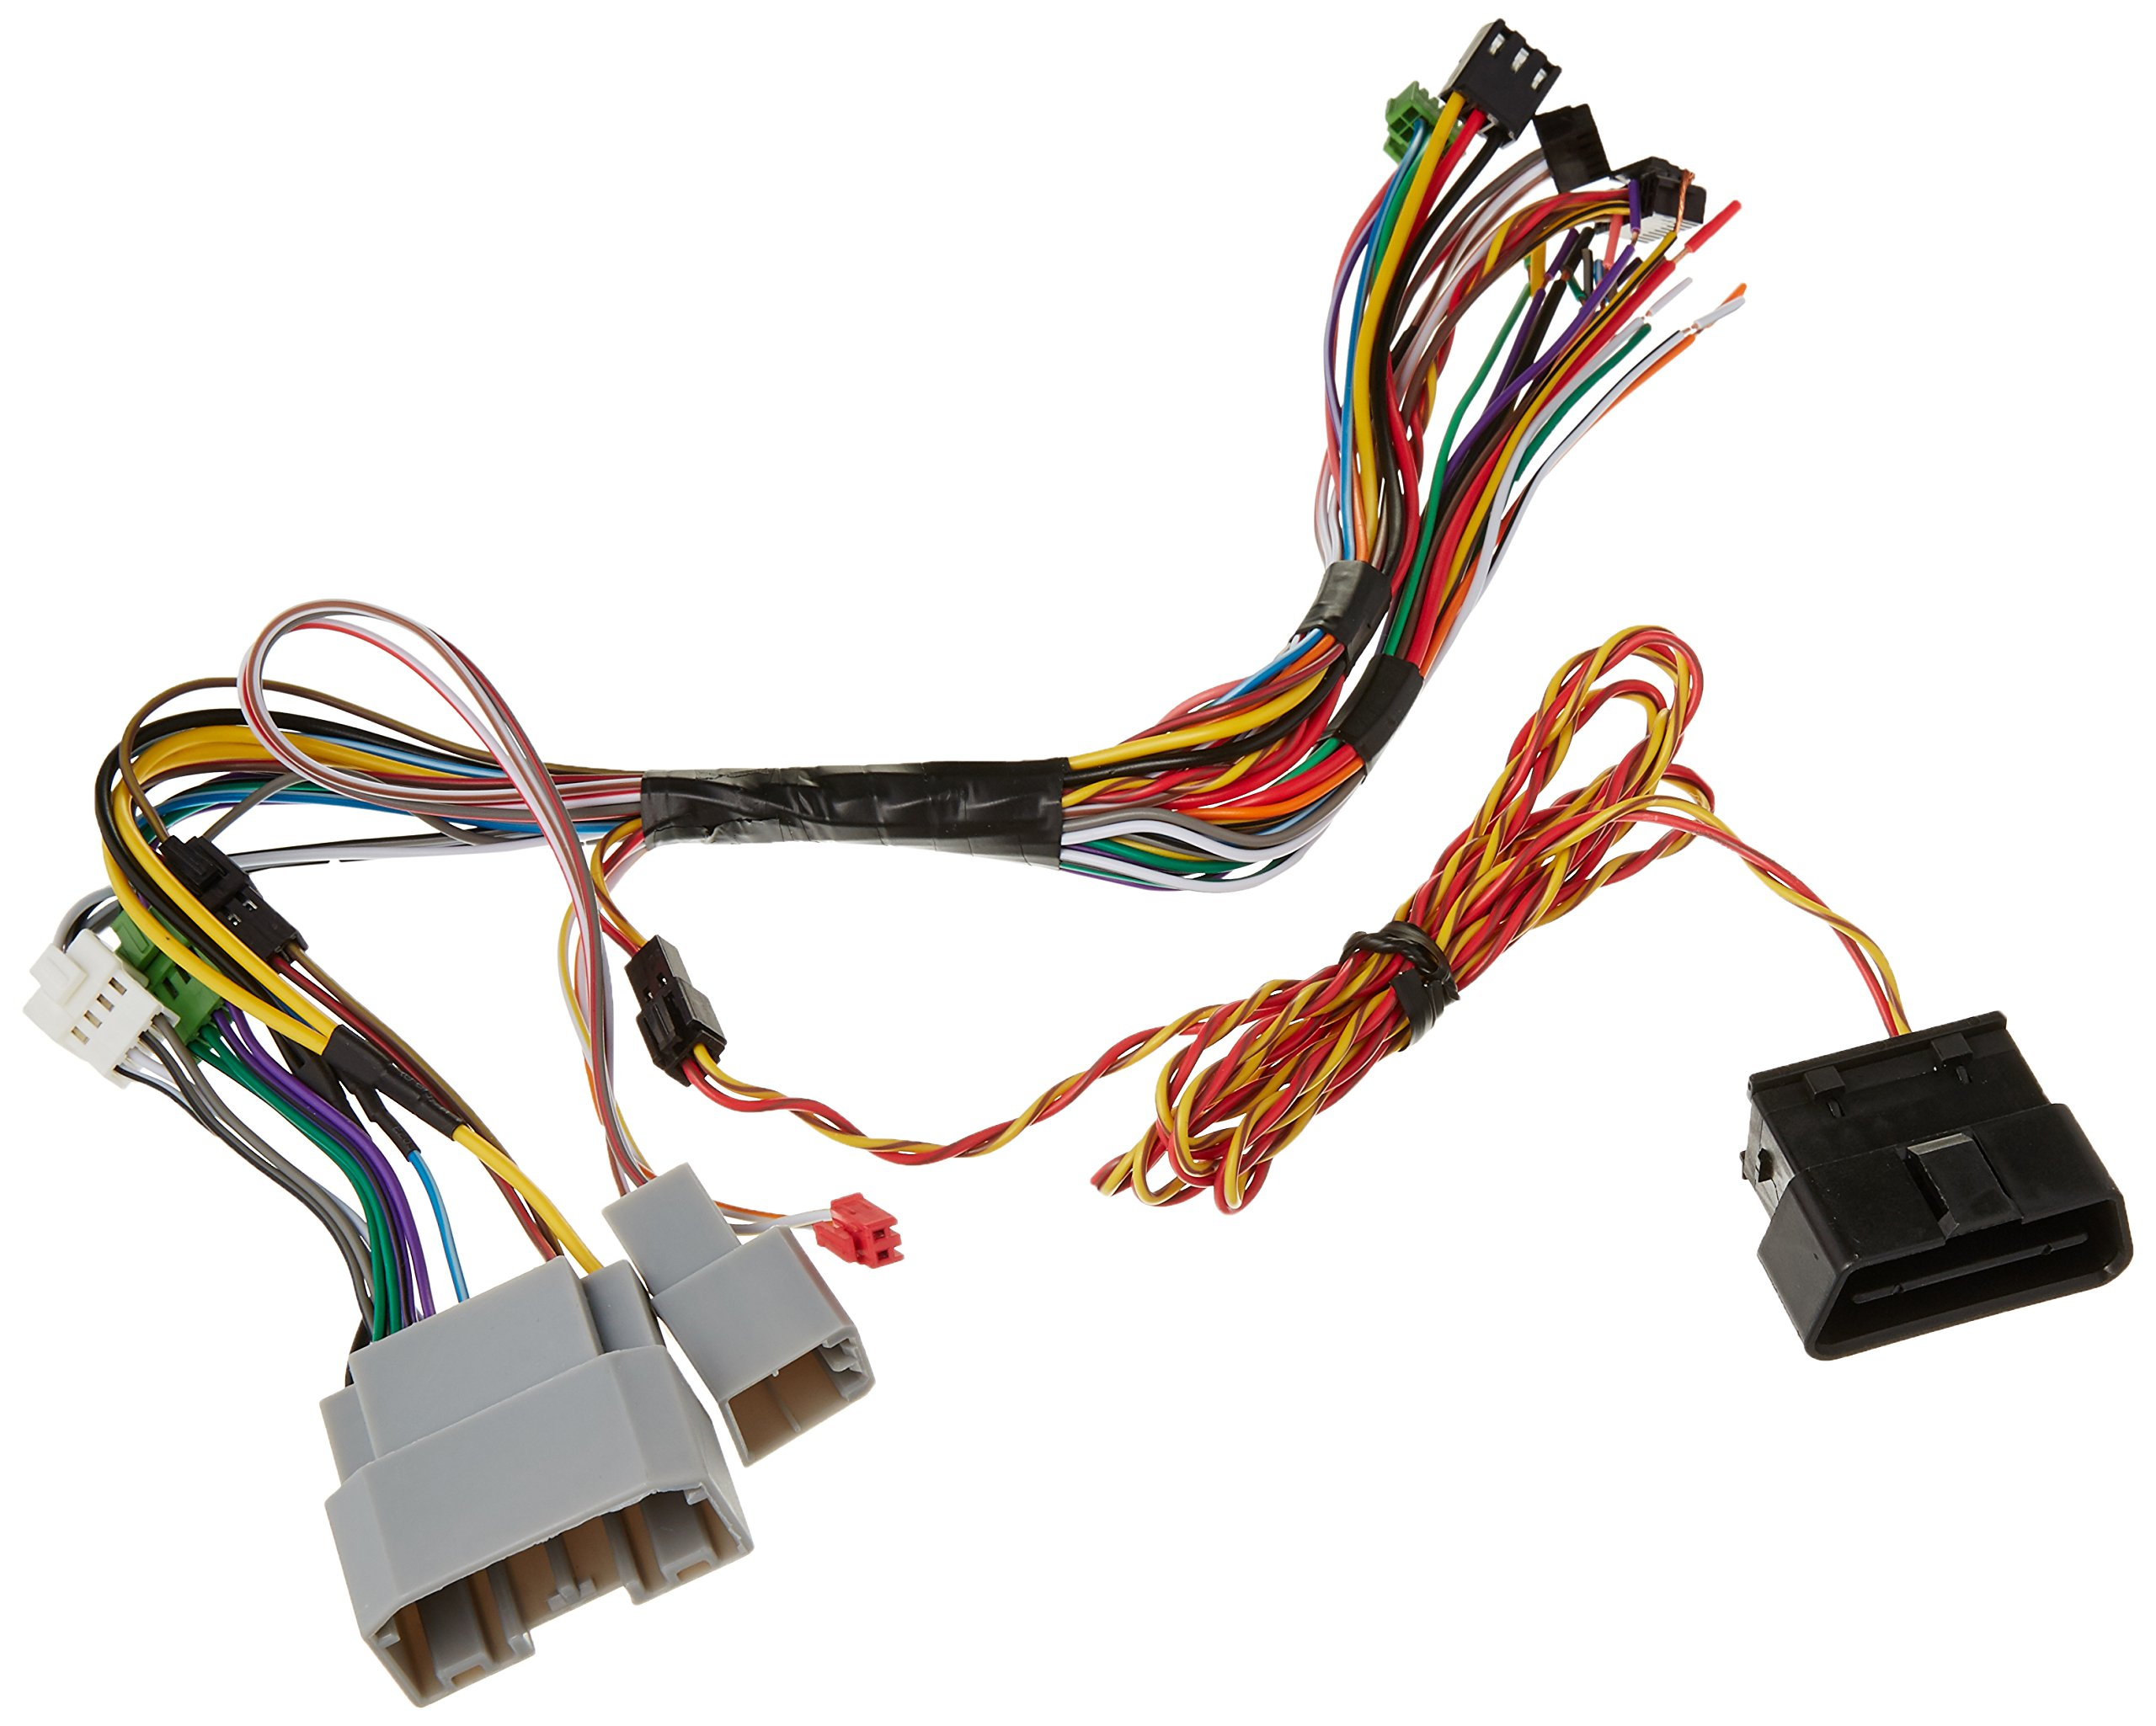 Maestro HRN-RR-CH1 Plug and Play T-Harness for CH1 Chrysler, Dodge, Jeep Vehicles by Maestro